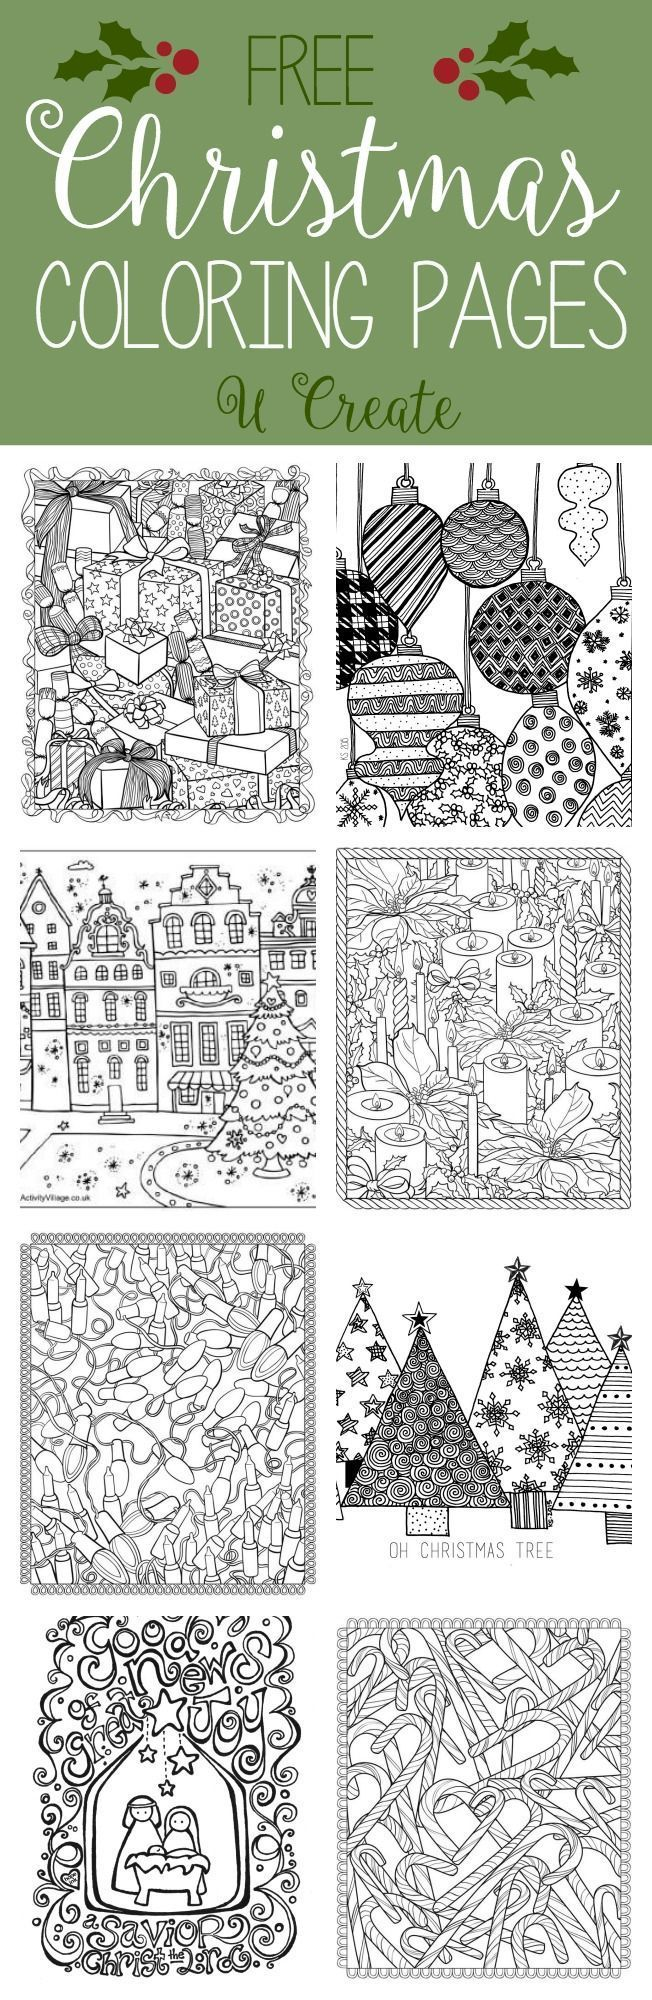 Free Christmas Adult Coloring Pages (U Create) | Weihnachten ...